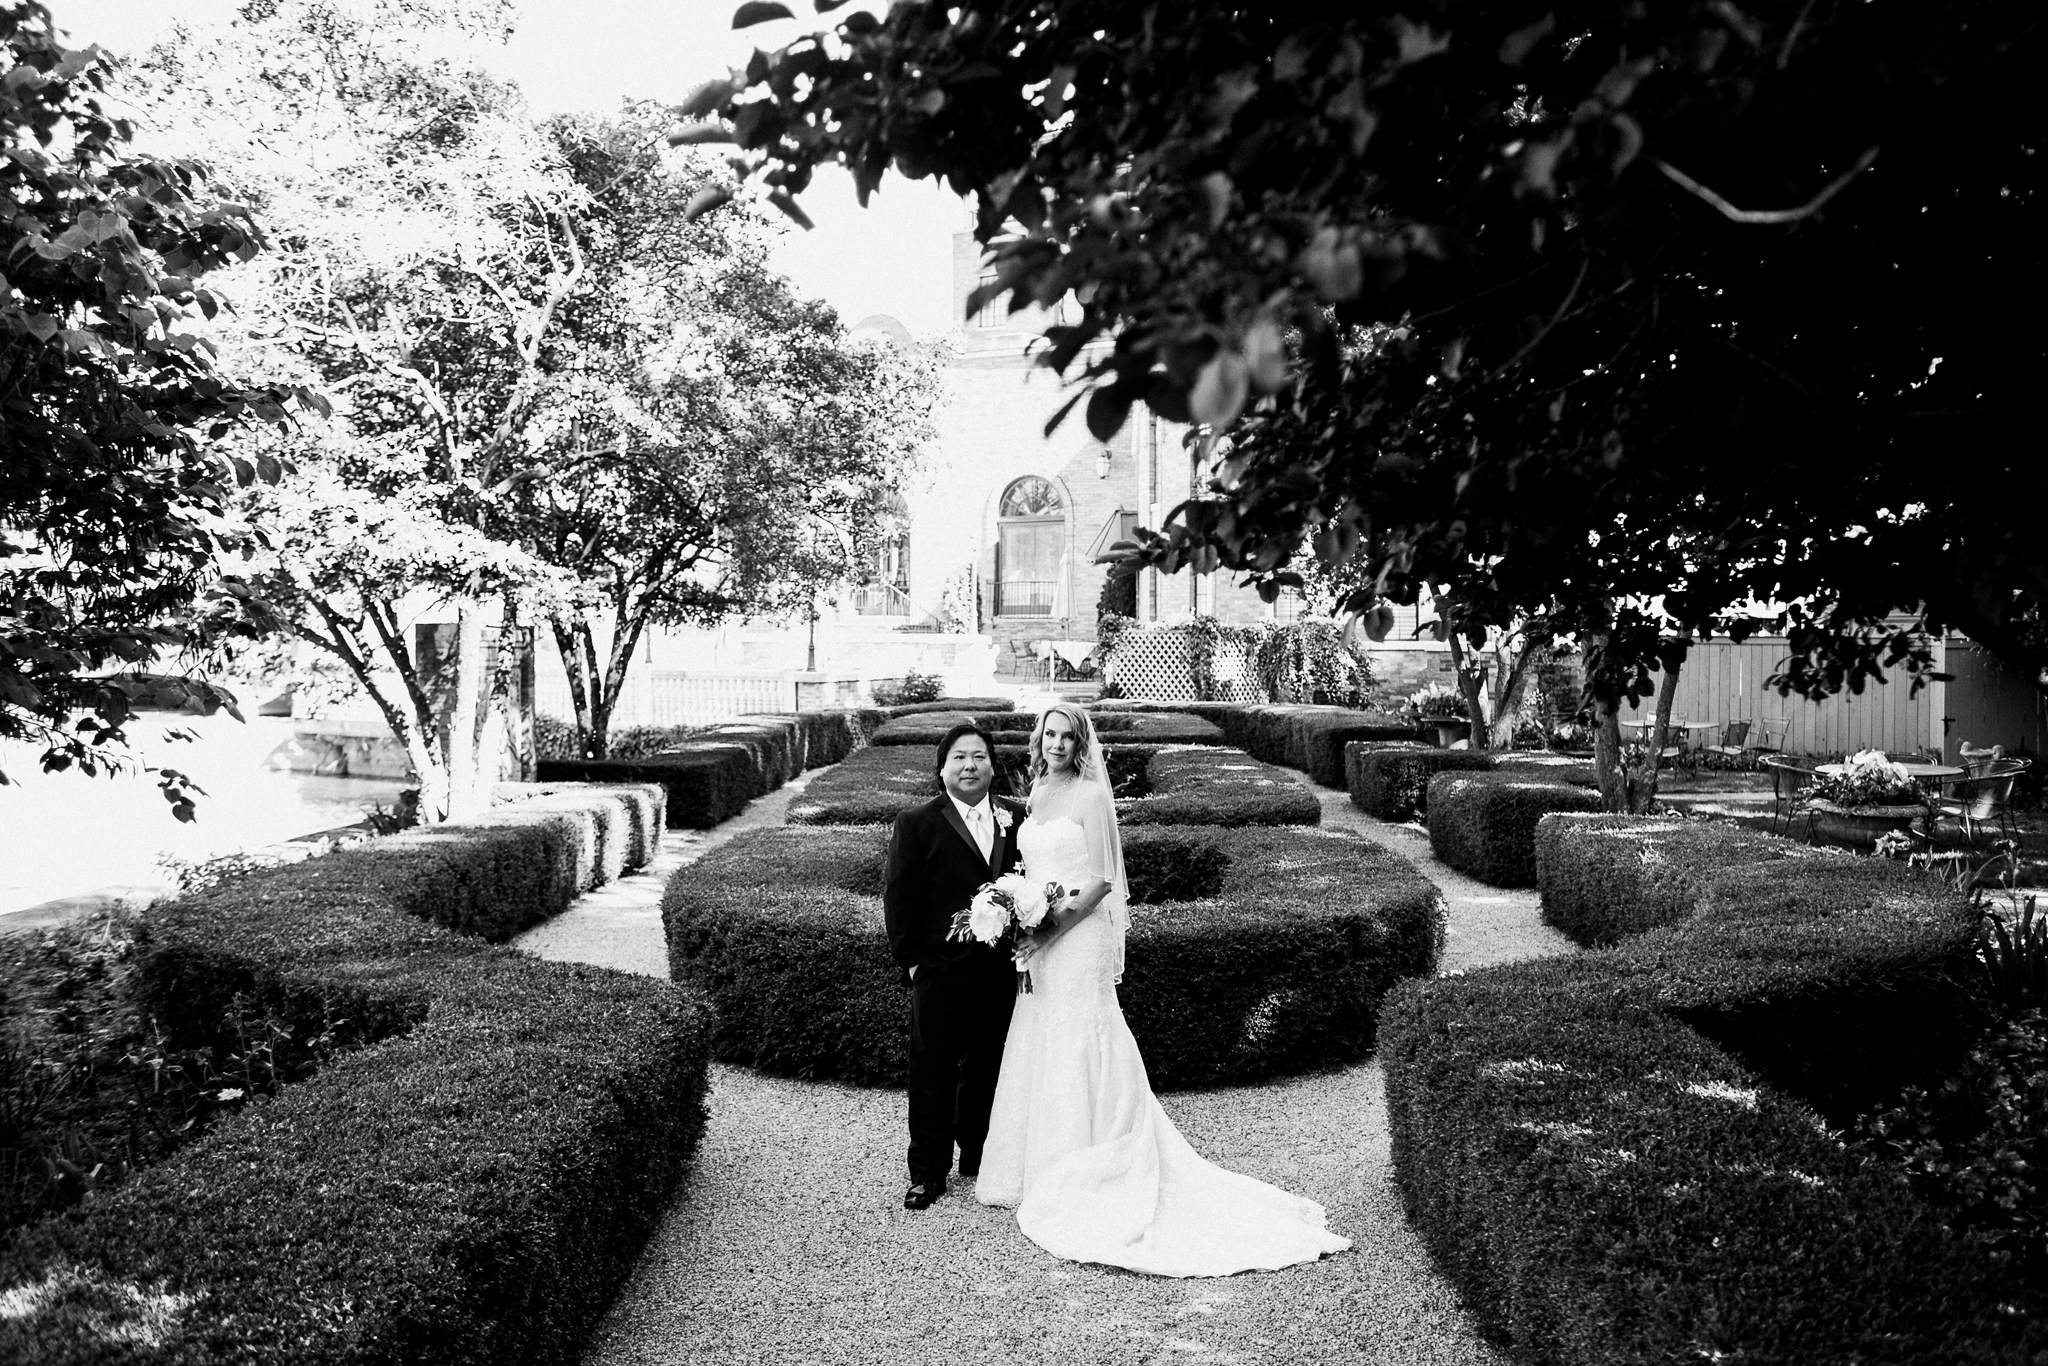 hotel_baker_st_charles_IL_wedding_photographer_0024.jpg